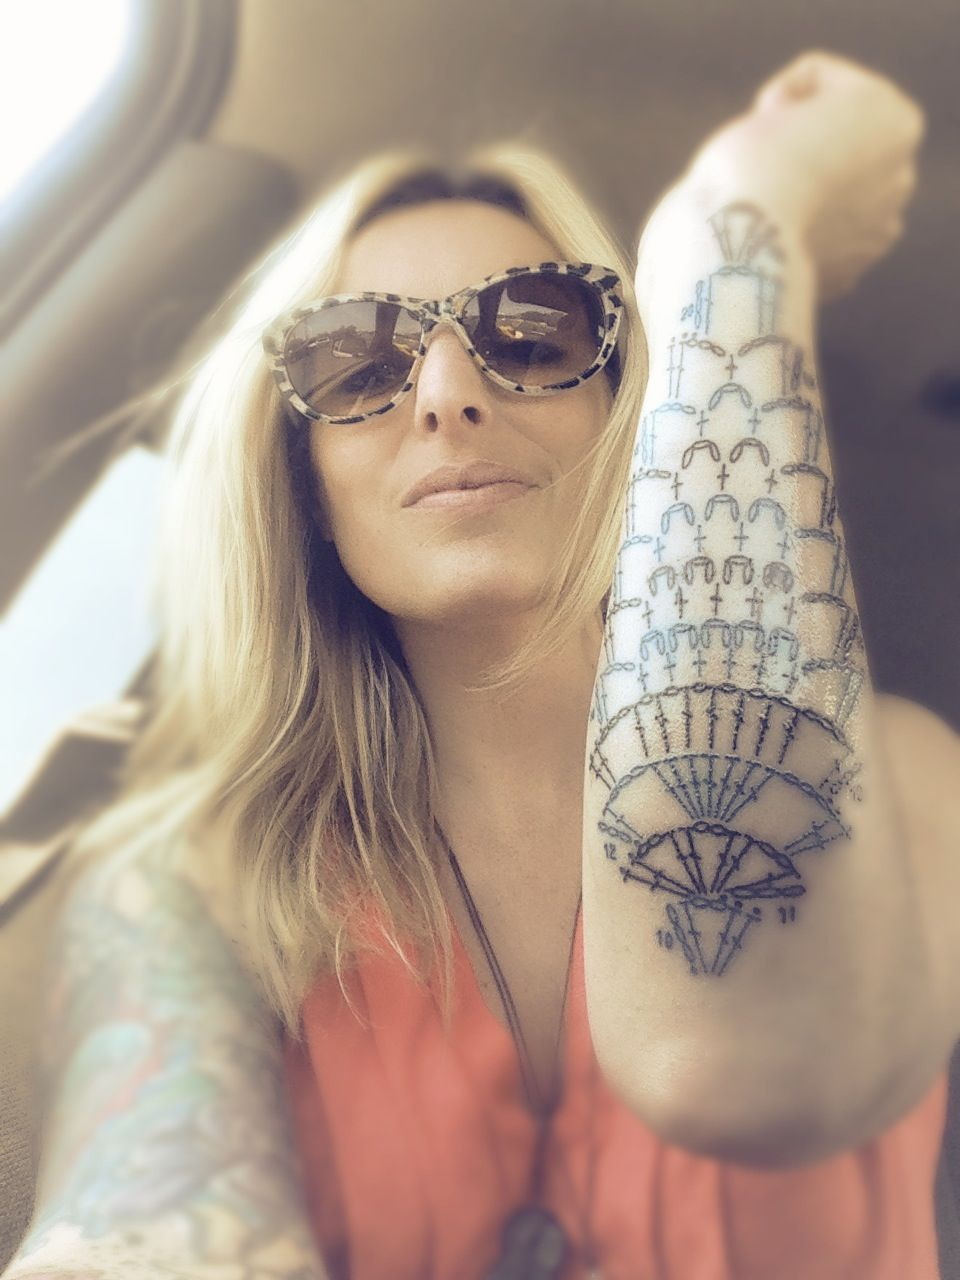 Hooked Crochet Tattoo Pictures to Pin on Pinterest